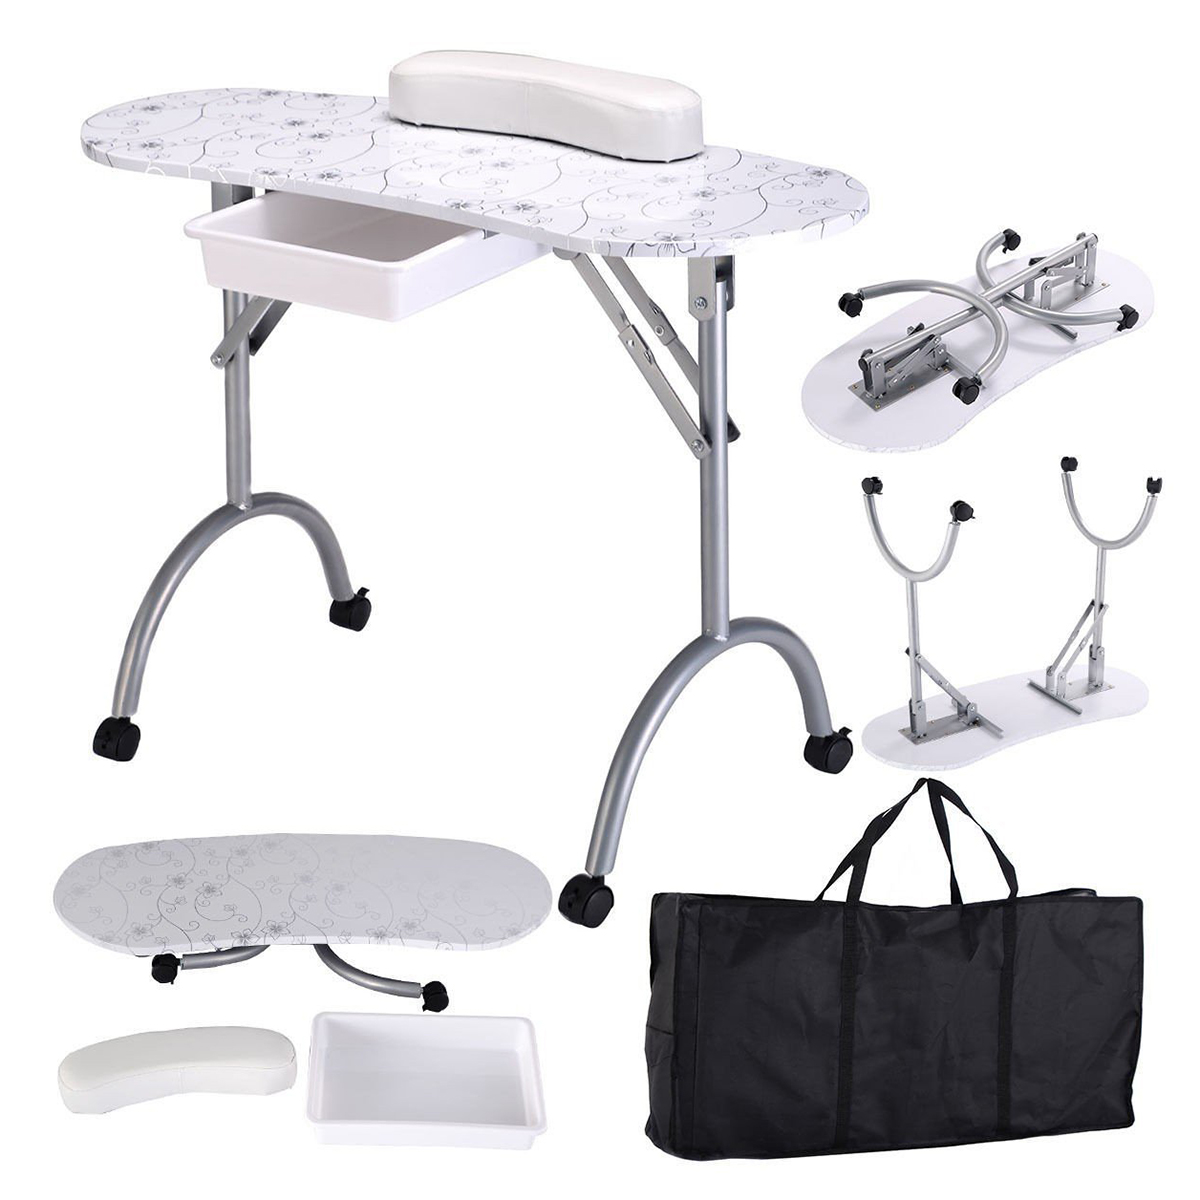 Portable Manicure Nail Table Station Desk Spa Beauty Salon Equipment (White Flowers)